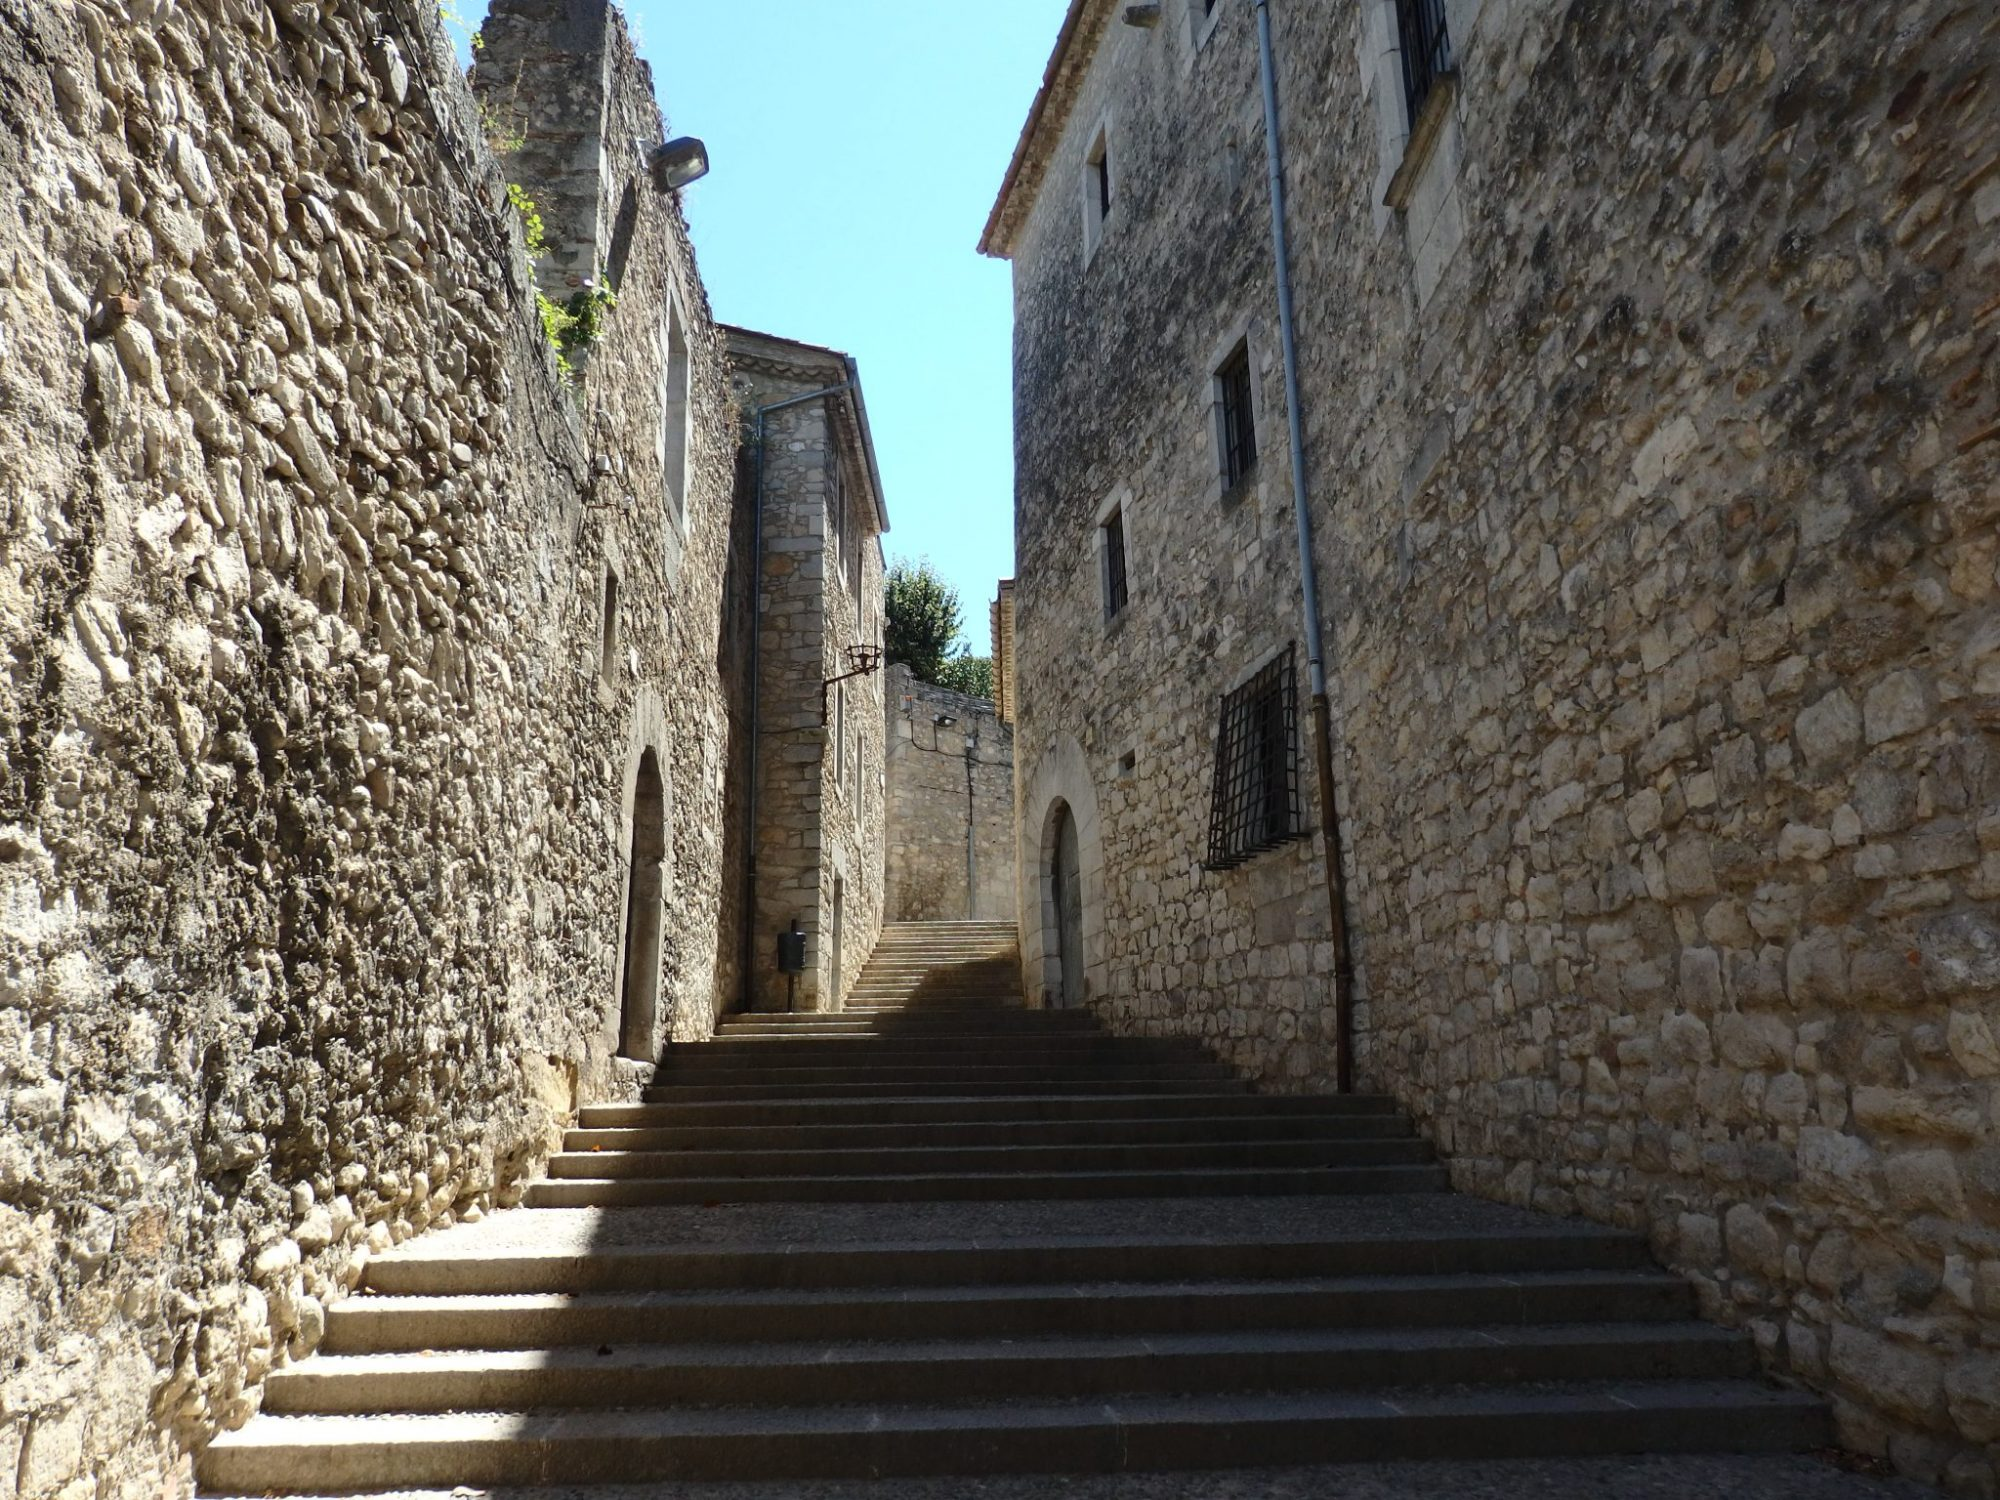 a street in the old section of Girona, Spain